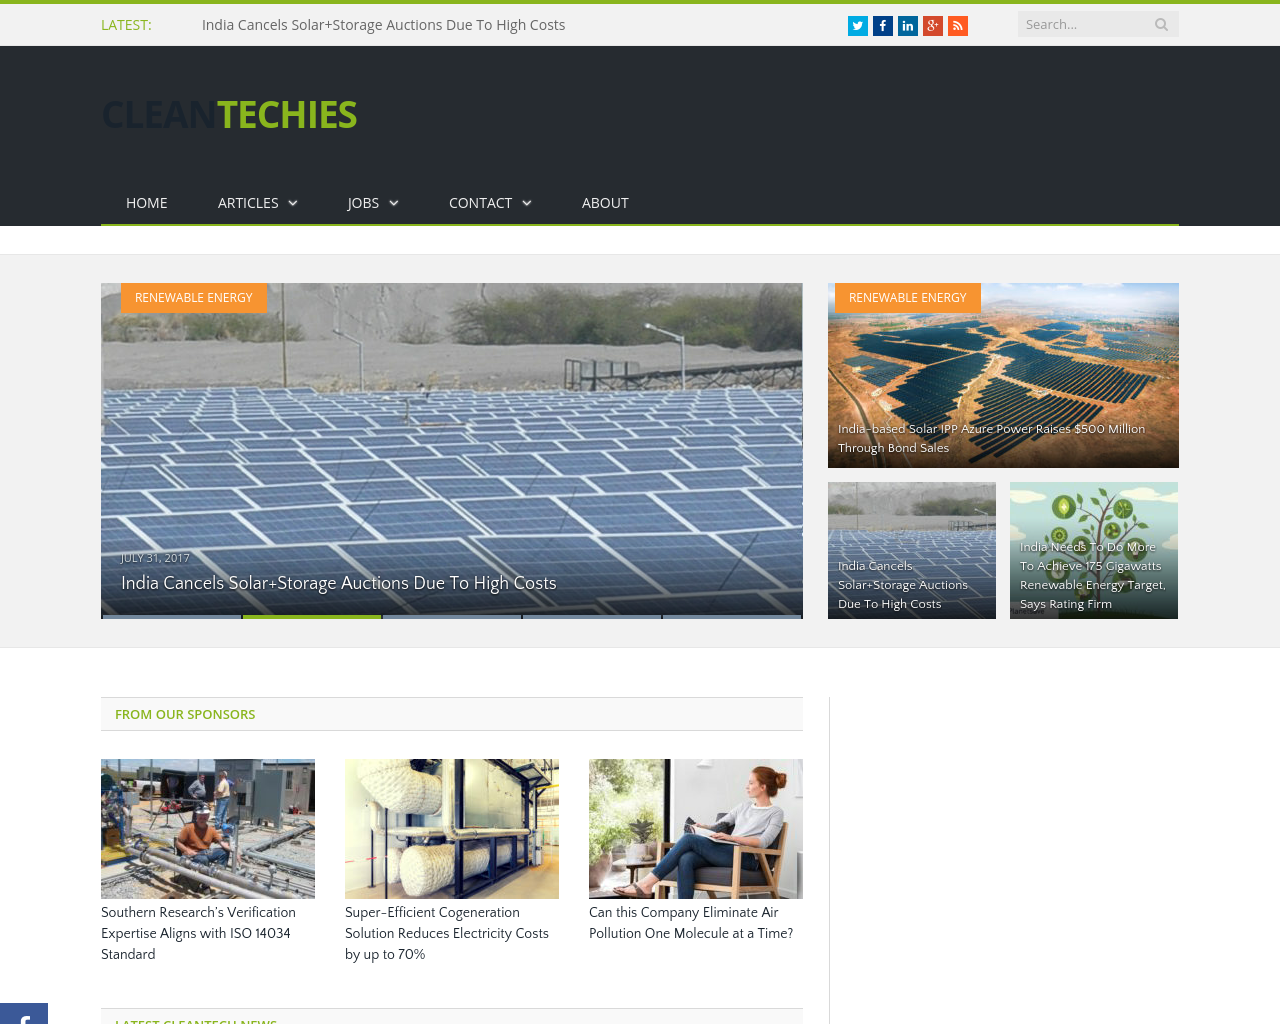 Cleantechies-Advertising-Reviews-Pricing